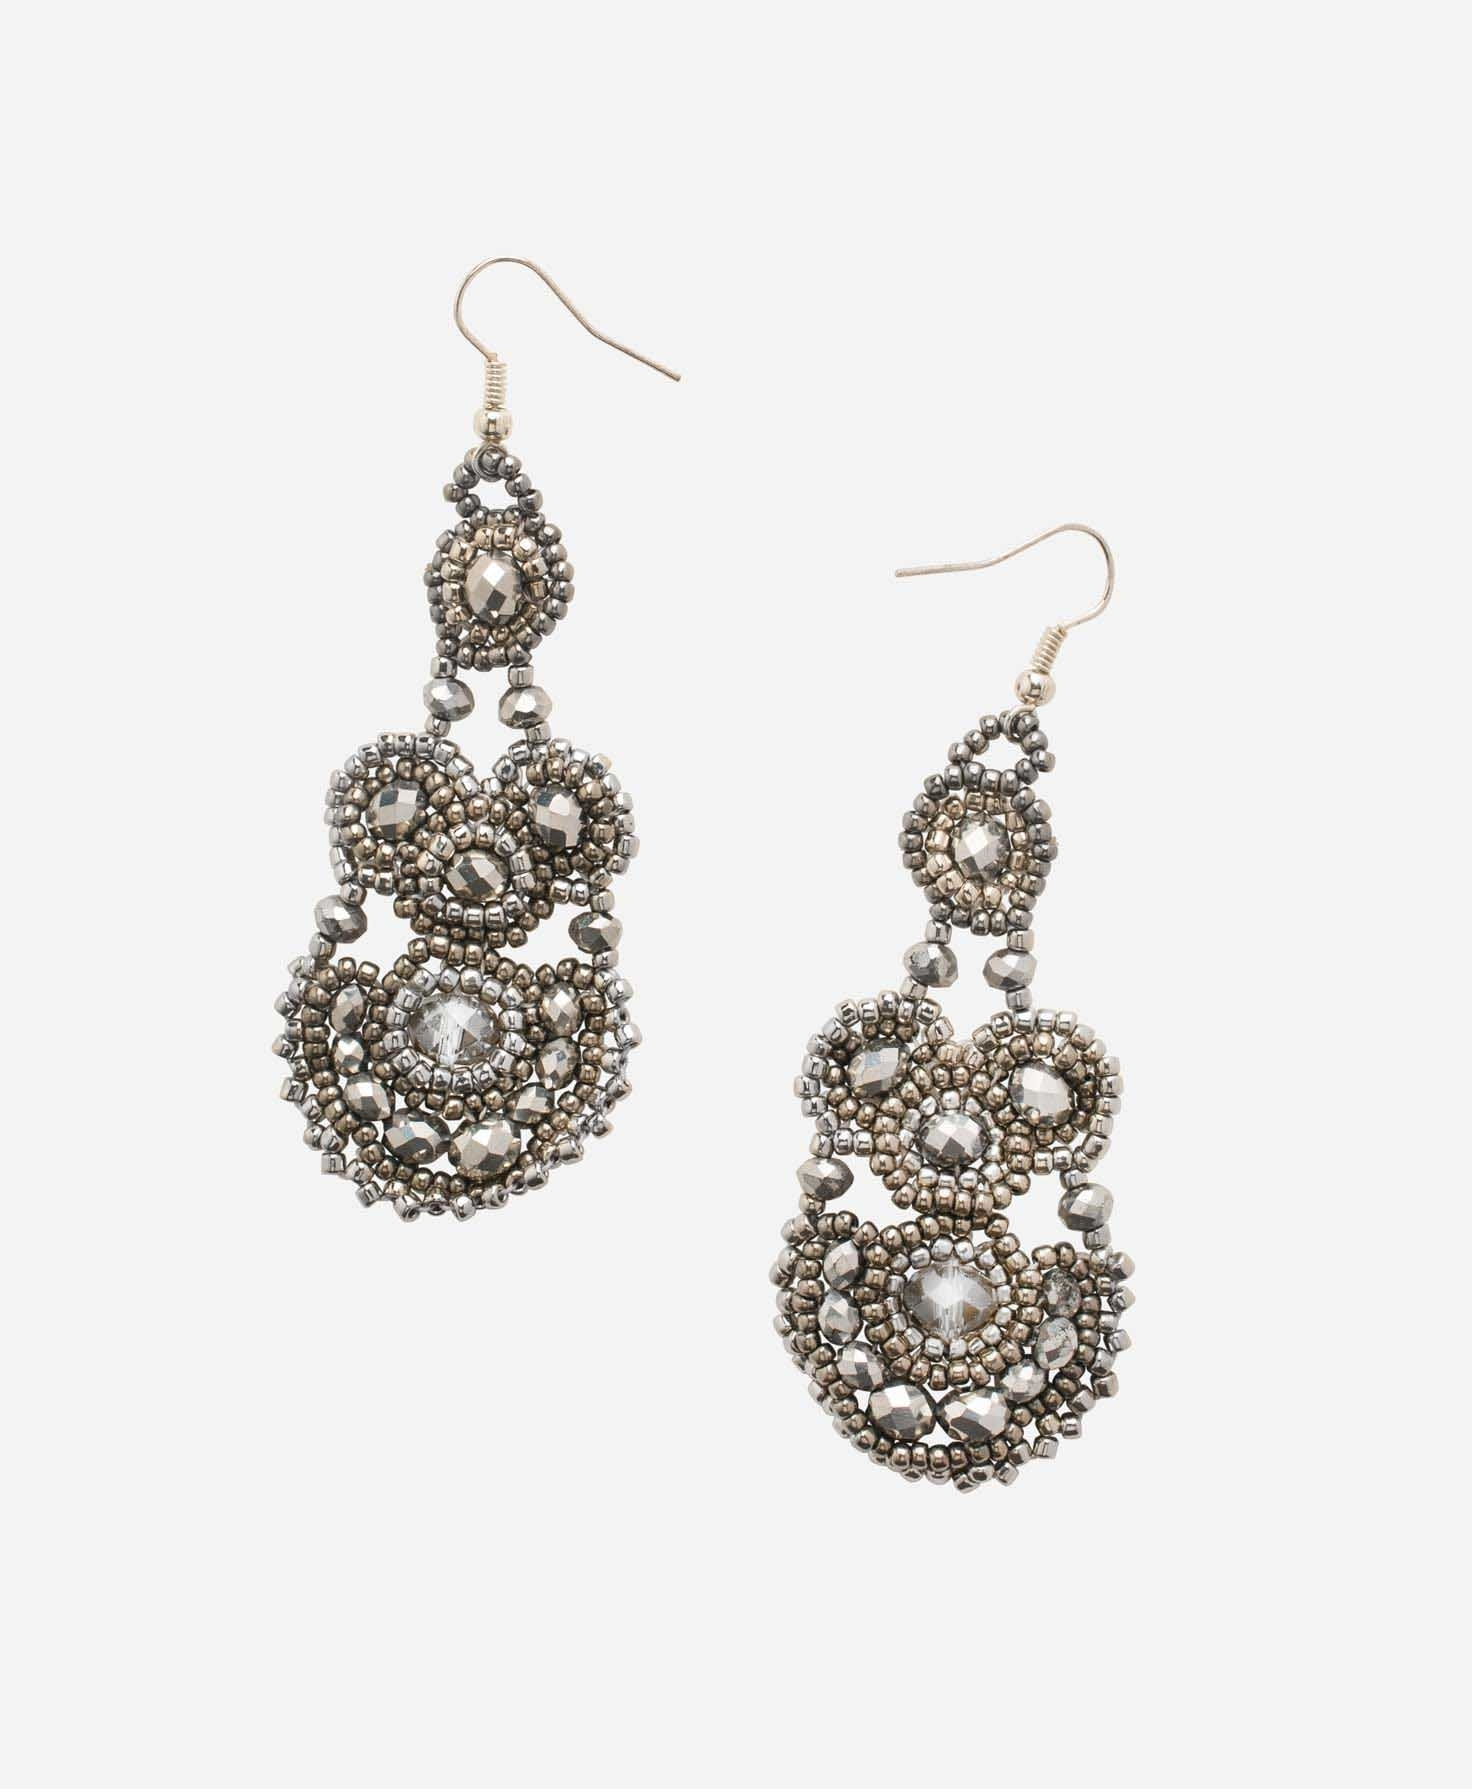 Newest Chandelier Accessories Pertaining To Shop Noonday Collection Jewelry & Accessories (View 14 of 15)